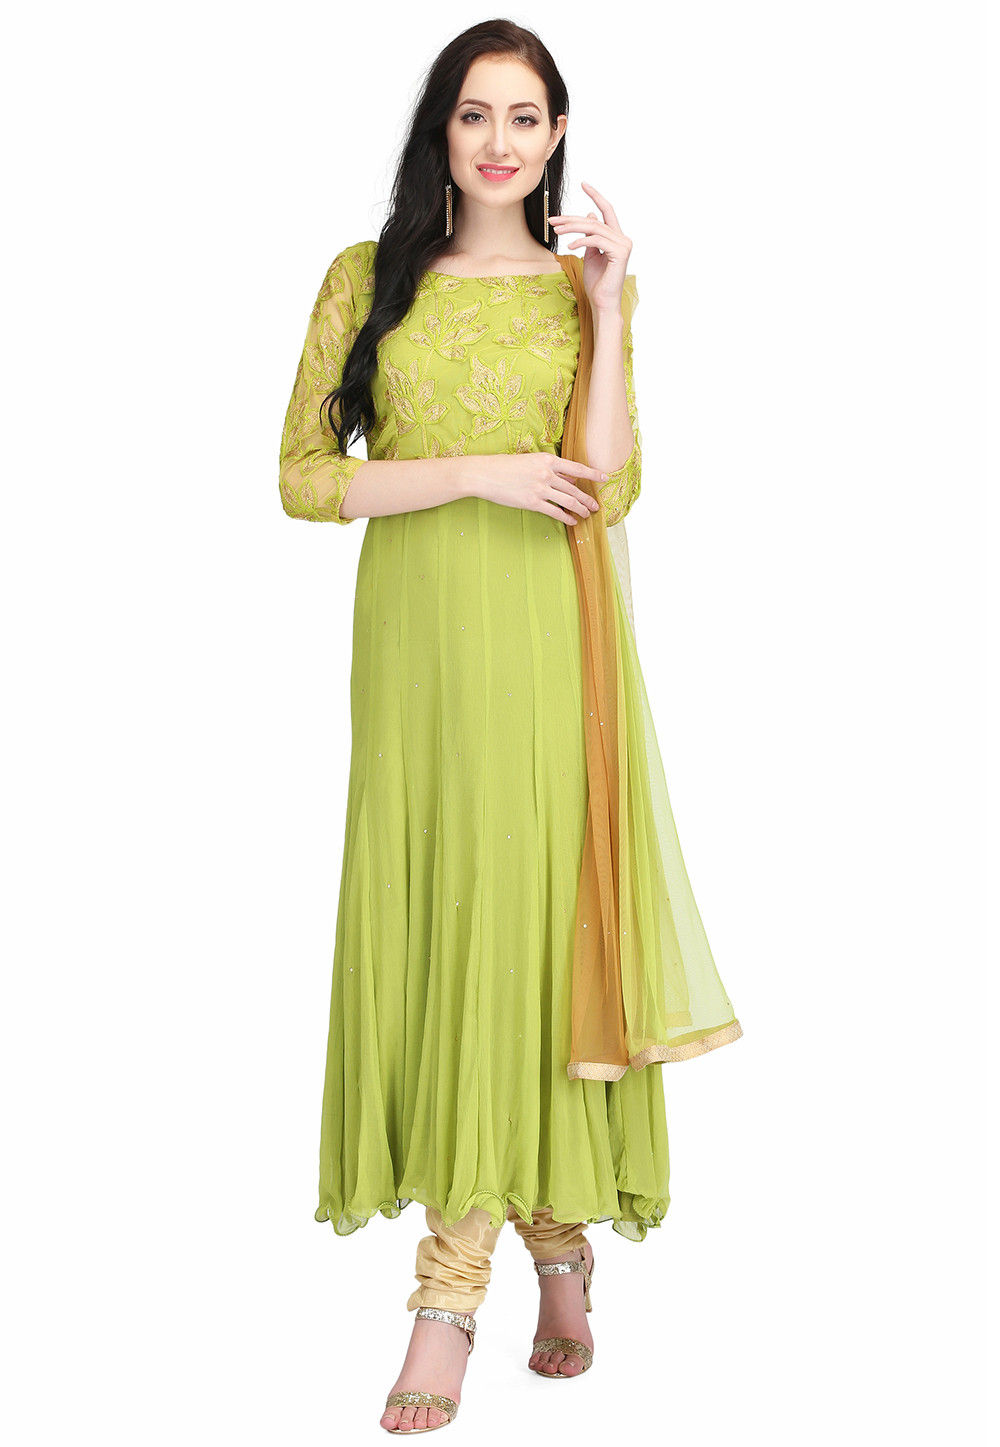 511164cc4fc9 Hand Embroidered Chiffon Anarkali Suit in Light Green : KPK90